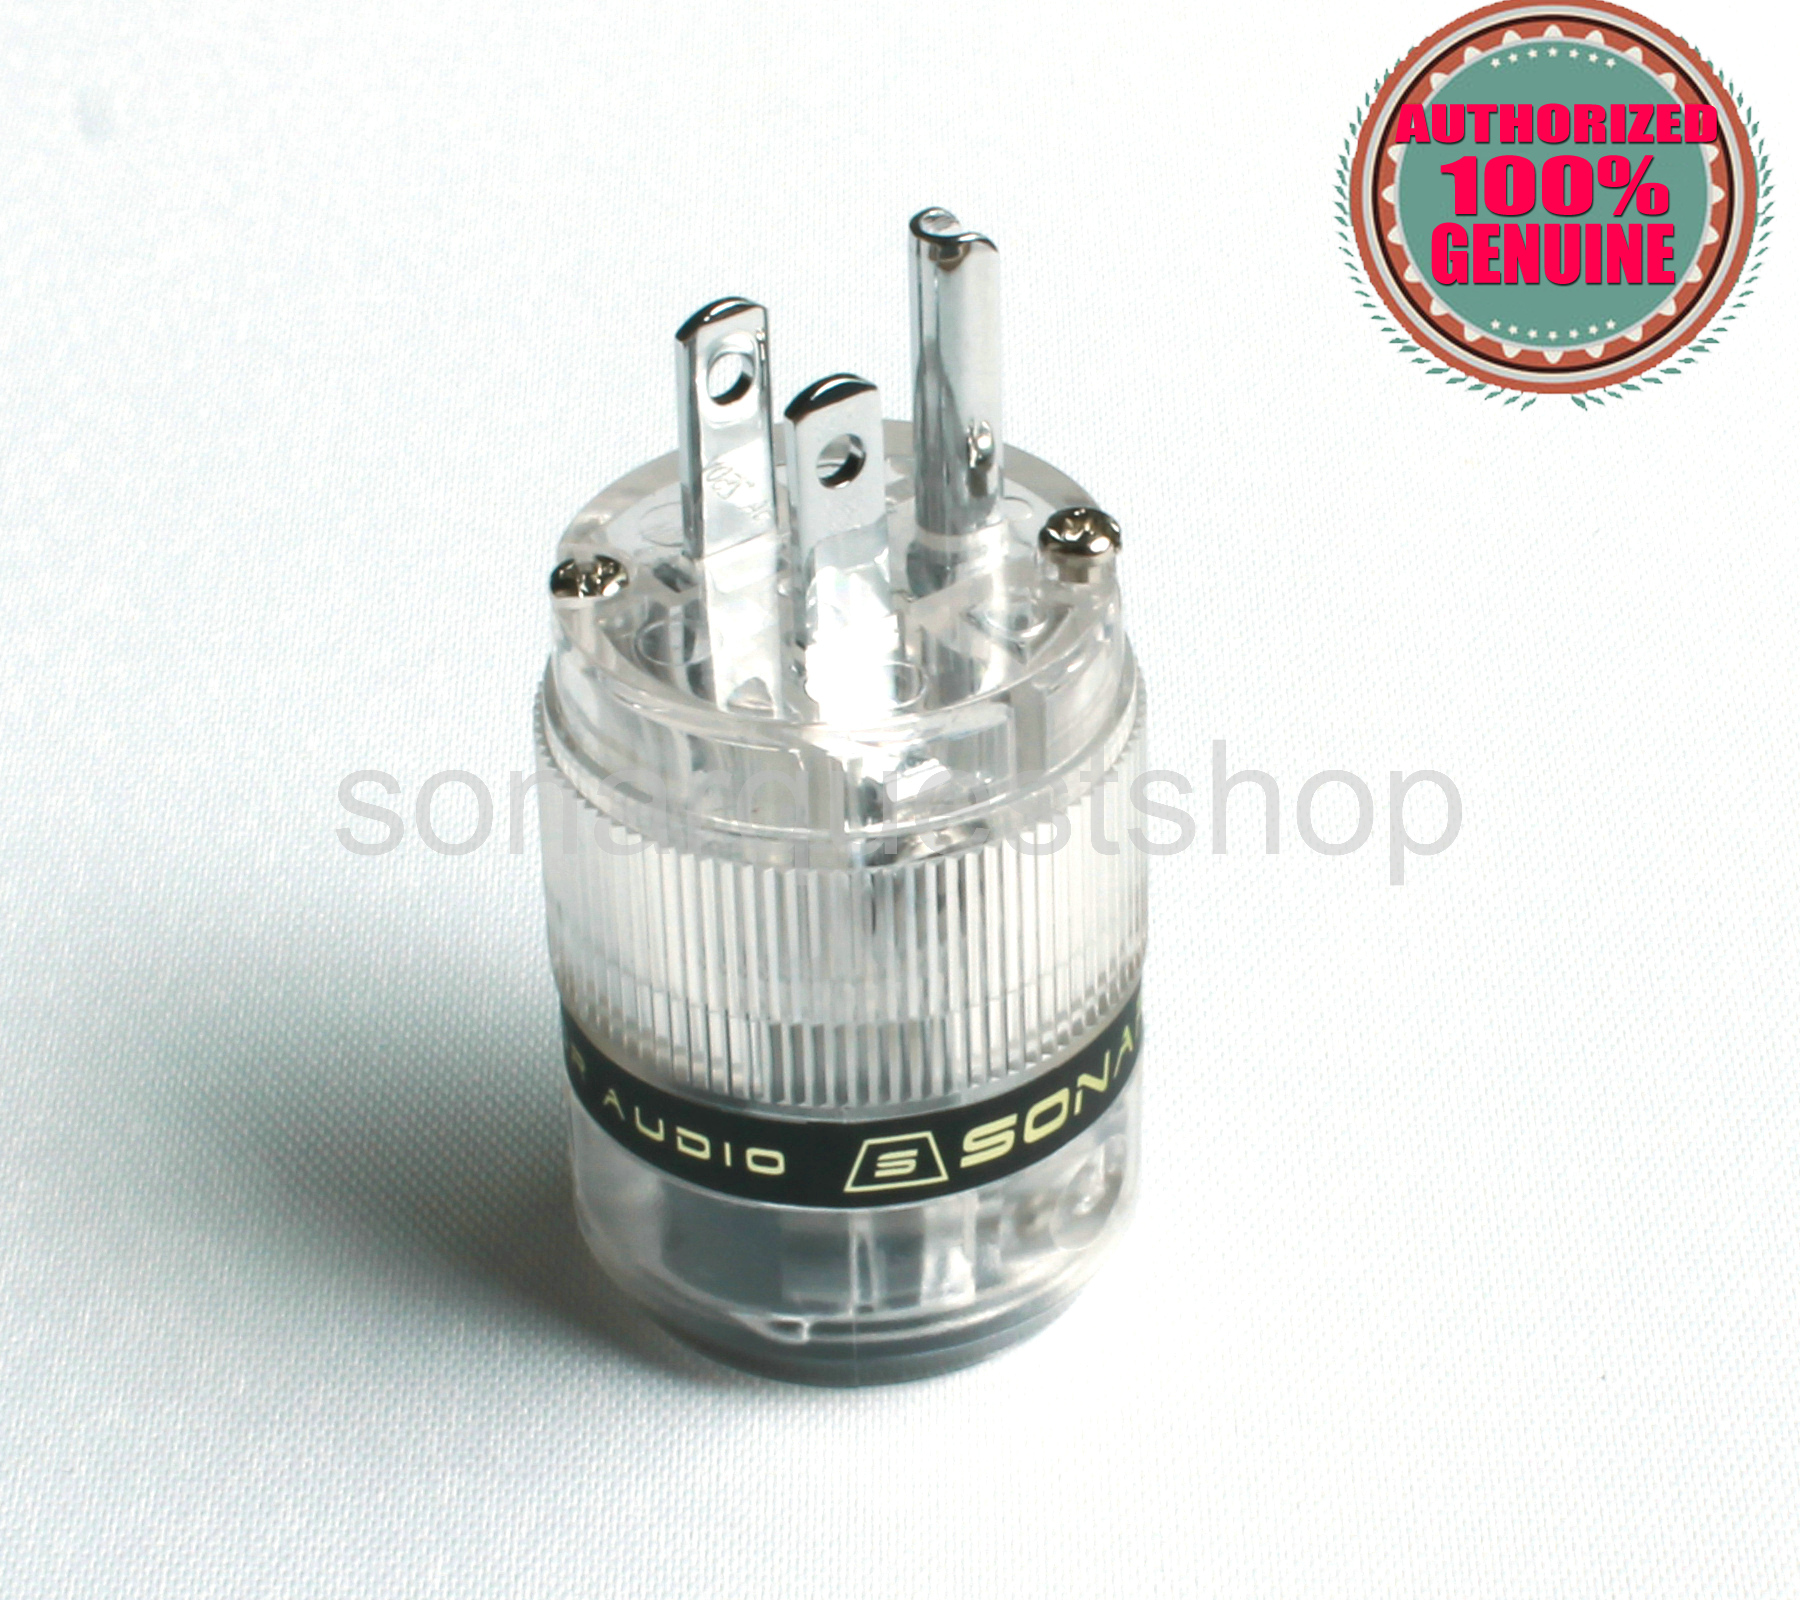 SONARQUEST ST-PP(T) Platinum Plated US ALL Transparent Power Plug